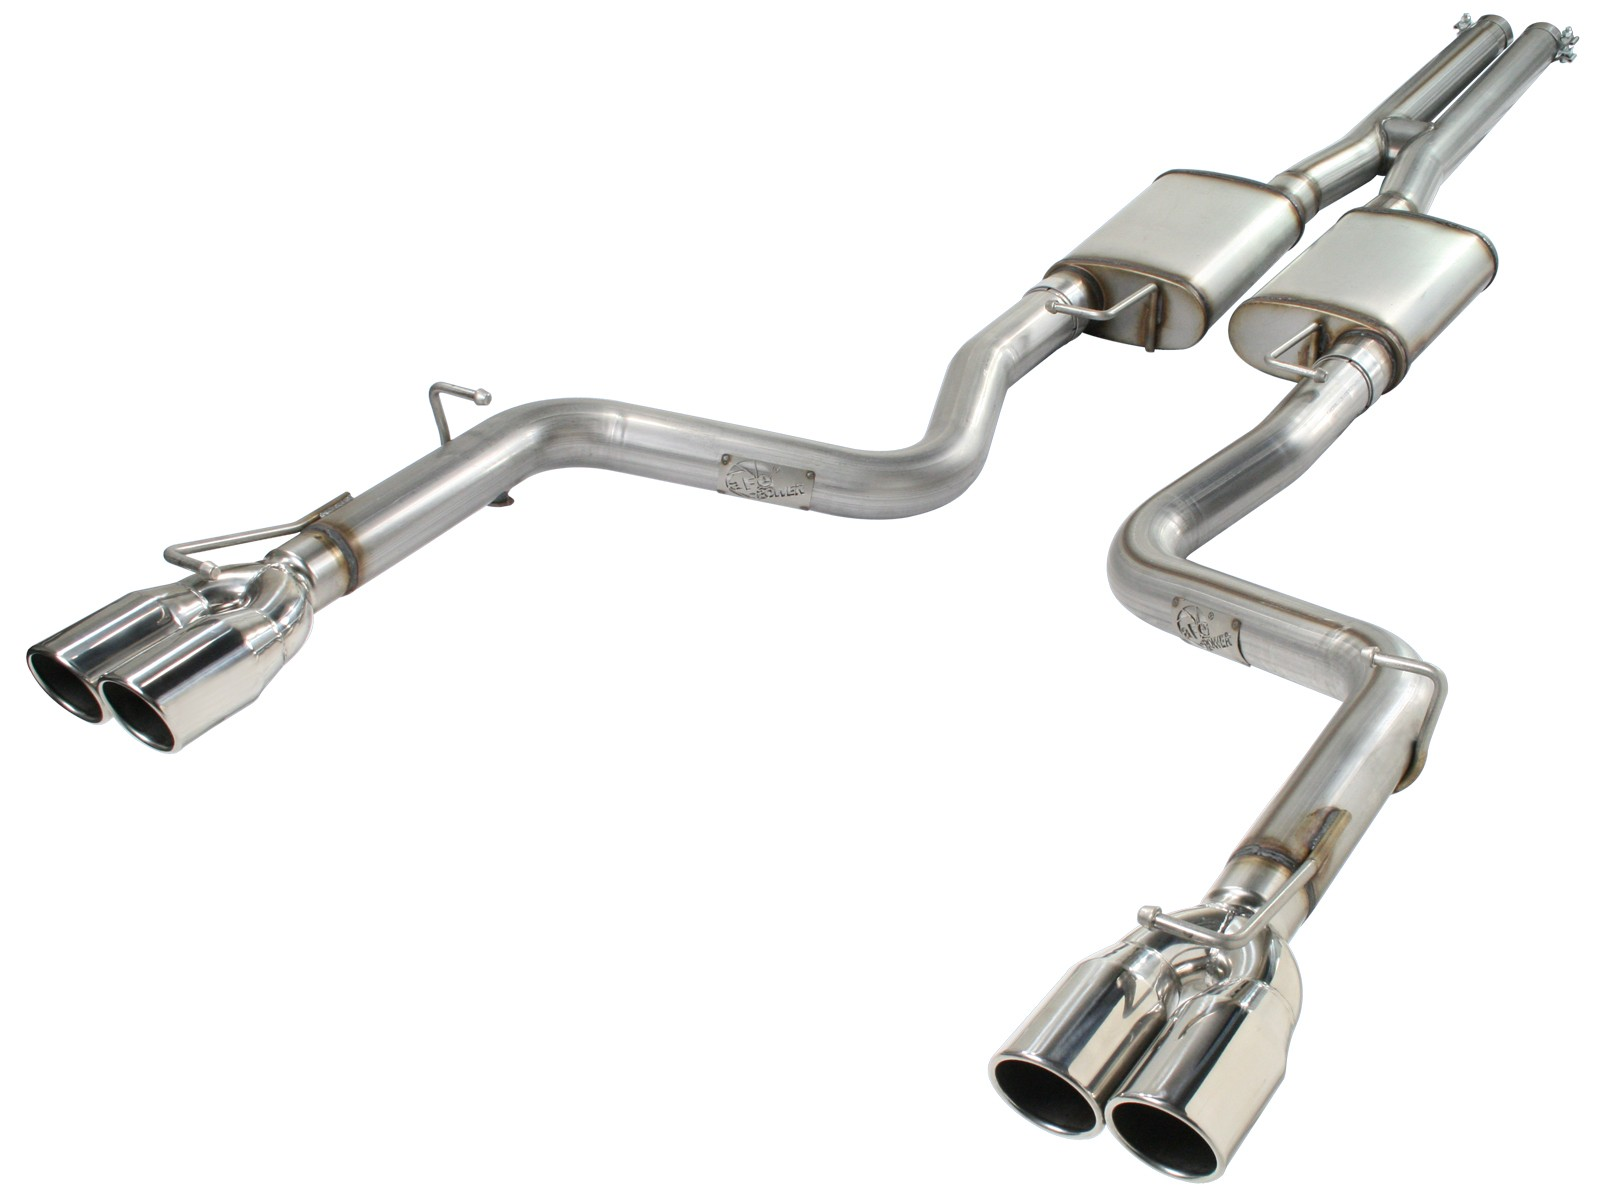 Mach Force Xp 3 409 Stainless Steel Cat Back Exhaust System Afe Power 2015 Dodge Srt Charger